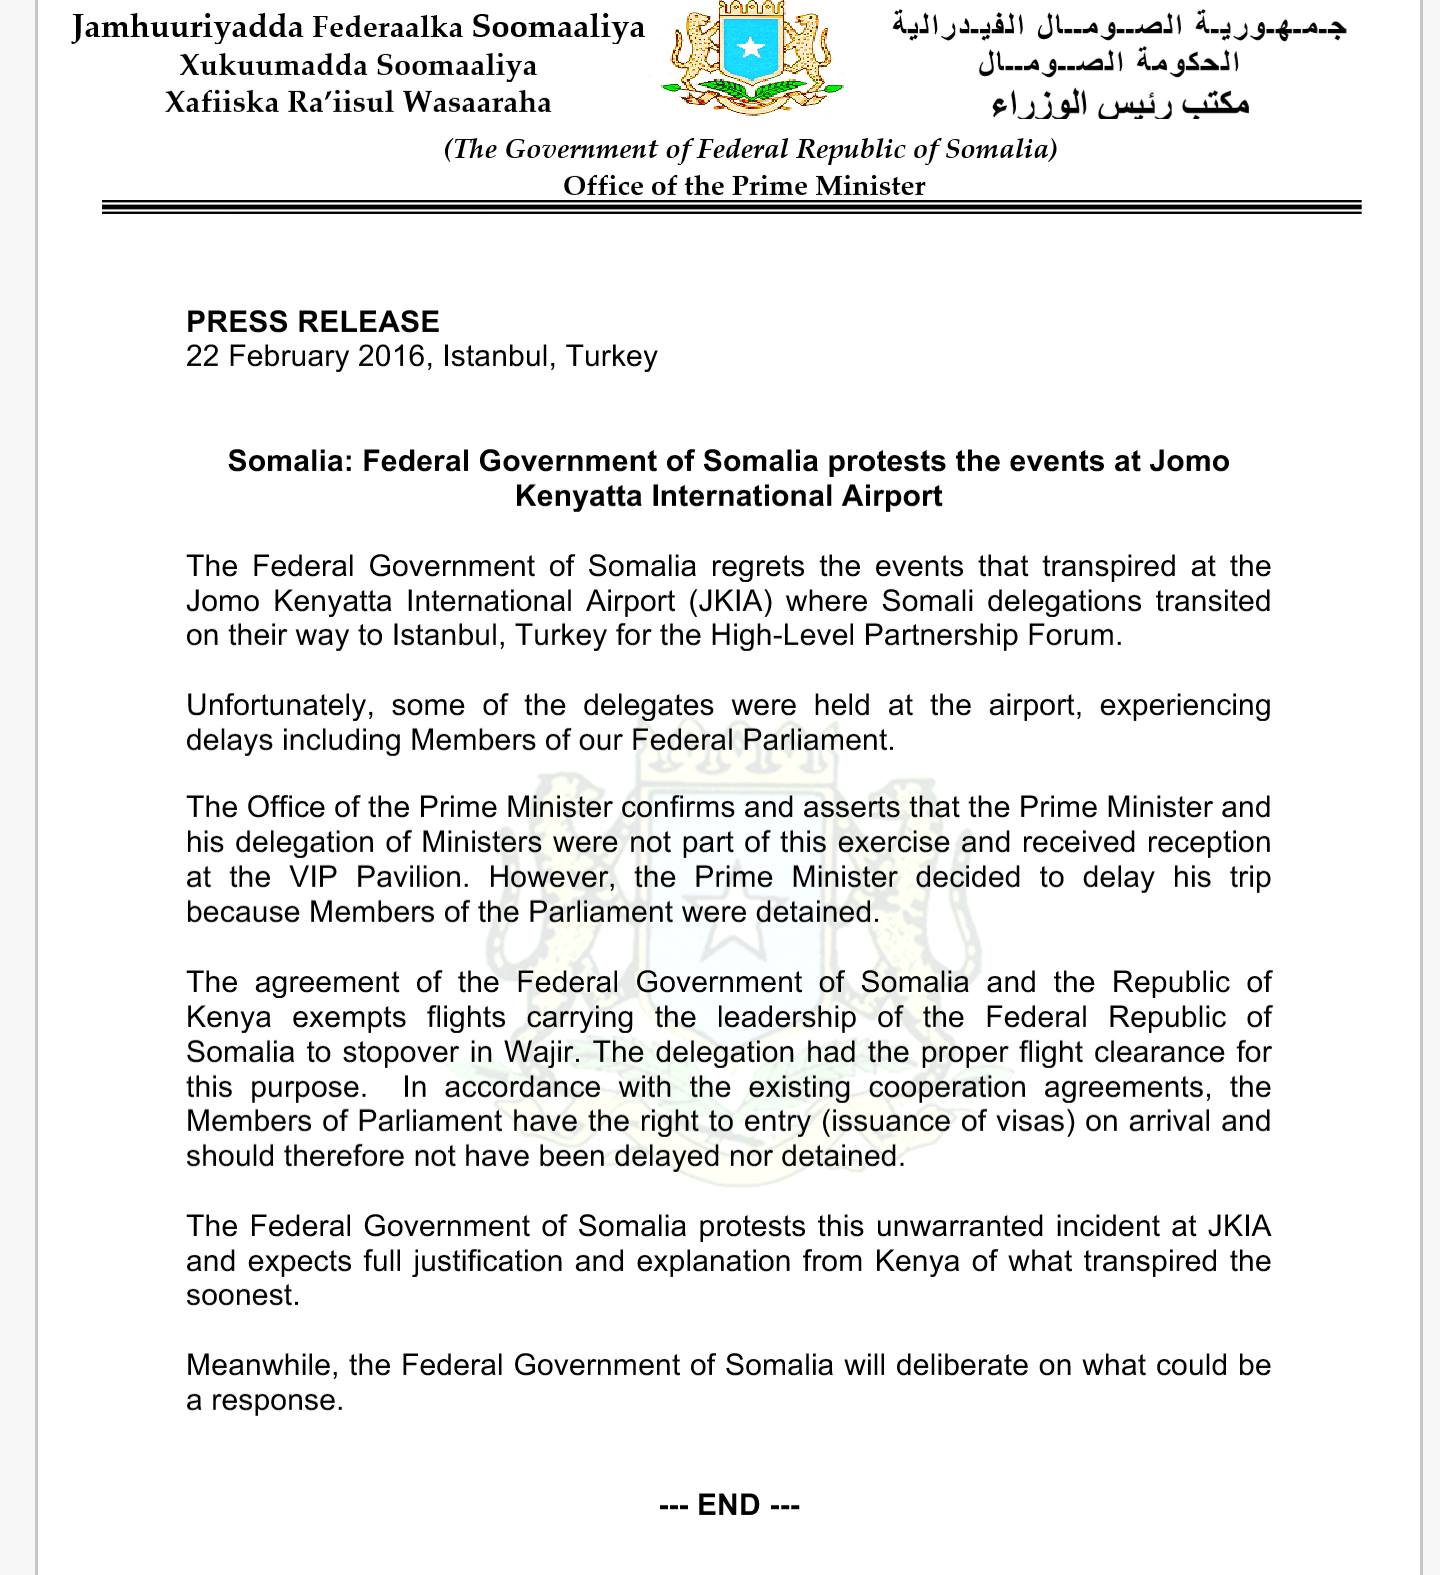 Government of Somalia protests the unwarranted detained at JKIA Airport of Kenya